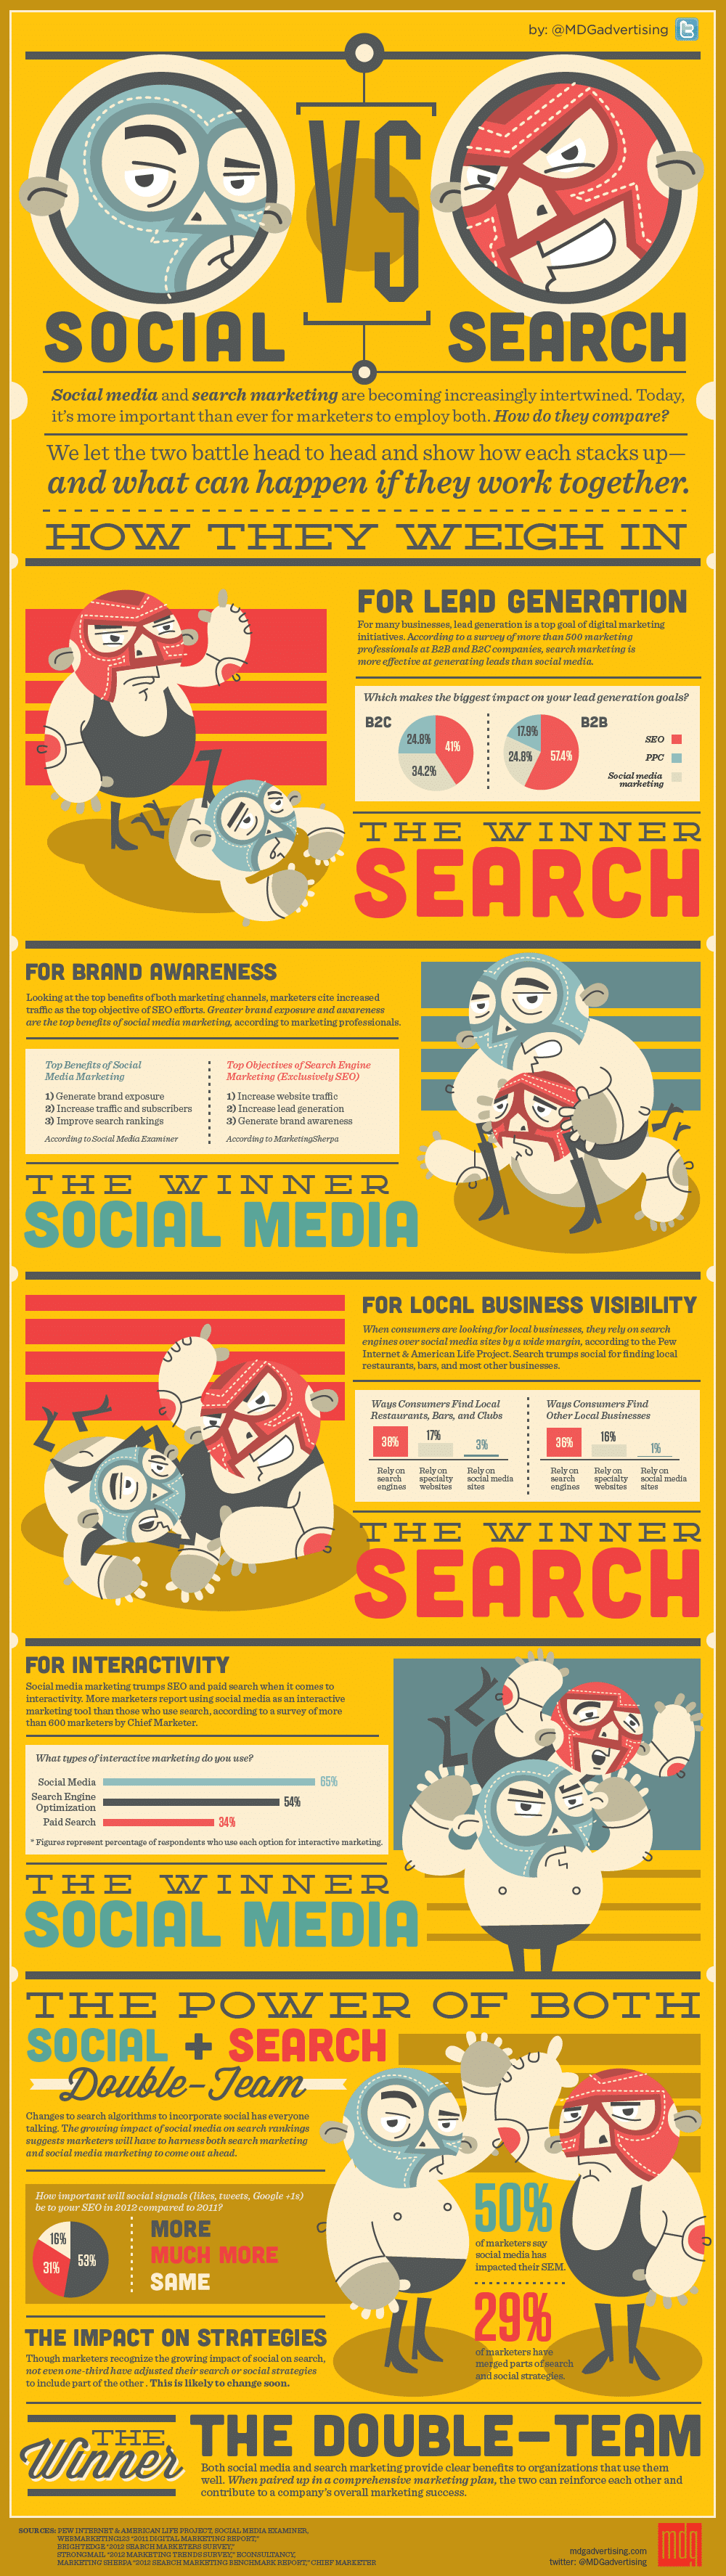 Social vs. Search Marketing: How They Compare [Infographic]